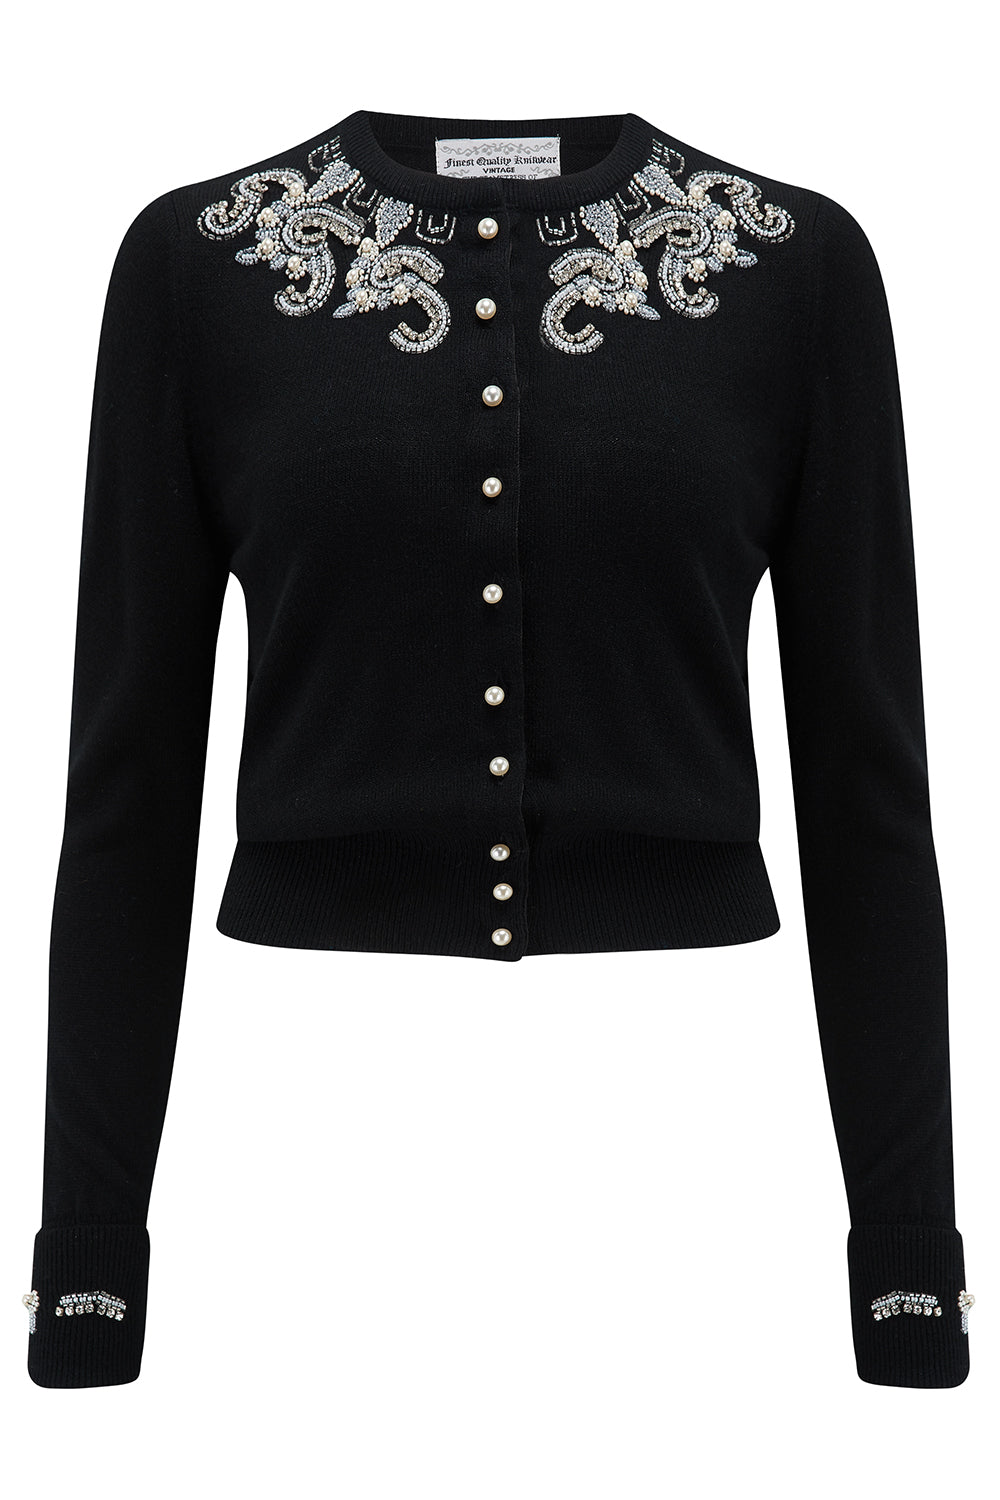 The Beaded Cardigan in Black, Stunning 1940s Vintage Style - RocknRomance True 1940s & 1950s Vintage Style